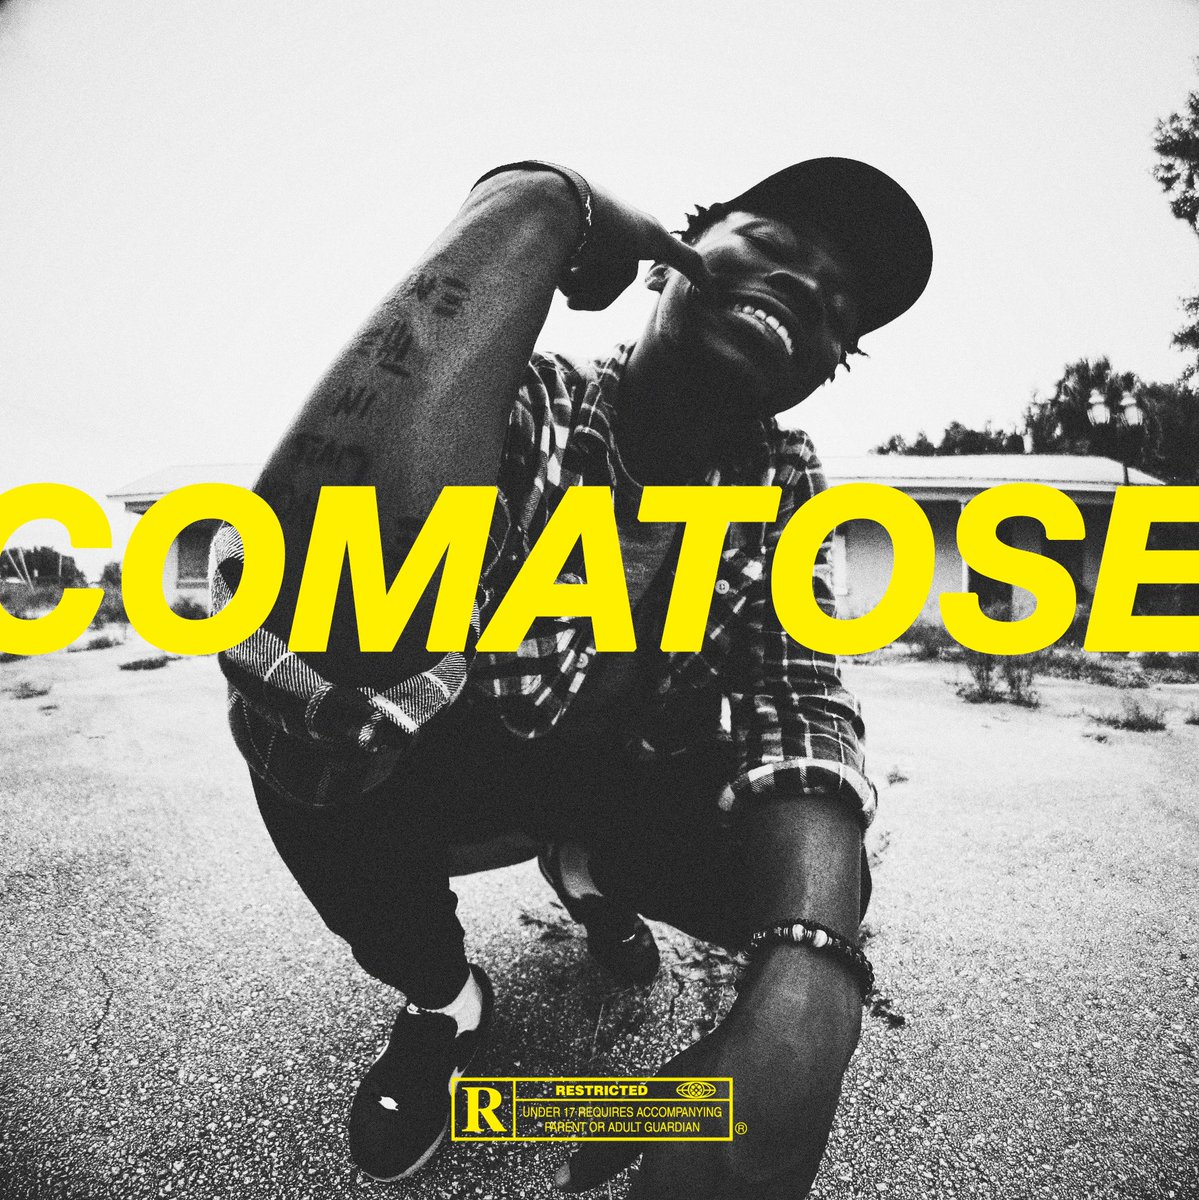 """OUT NOW """"Comatose""""  Prod By: @Kountdown_  and @JayzeOfficial   Mixed by @mixedbytra   https://t.co/l2rGhuDrmc https://t.co/gVWlb5K9CJ"""